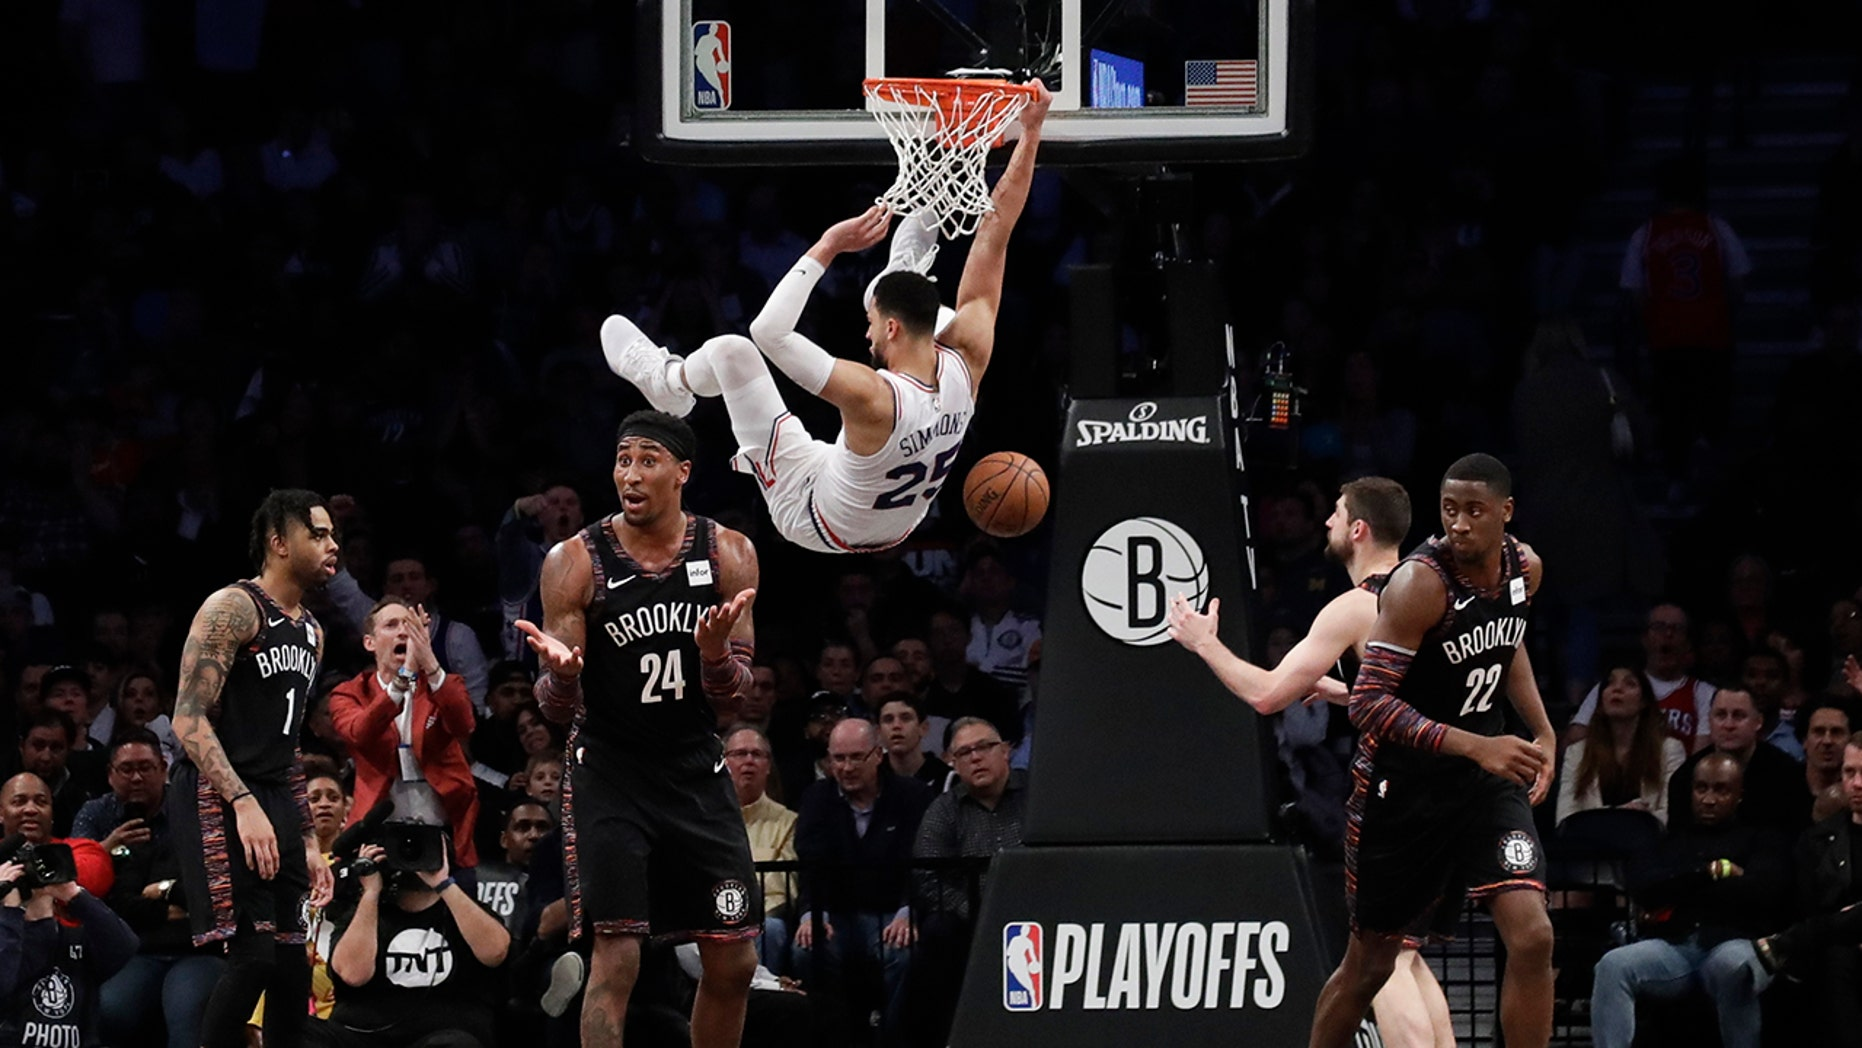 Brooklyn Nets' Rondae Hollis-Jefferson (24), Caris LeVert (22) and D'Angelo Russell (1) react to a dunk by Philadelphia 76ers' Ben Simmons (25) during the second half in Game 3 of a first-round NBA basketball playoff series Thursday, April 18, 2019, in New York. The 76ers won 131-115. (AP Photo/Frank Franklin II)